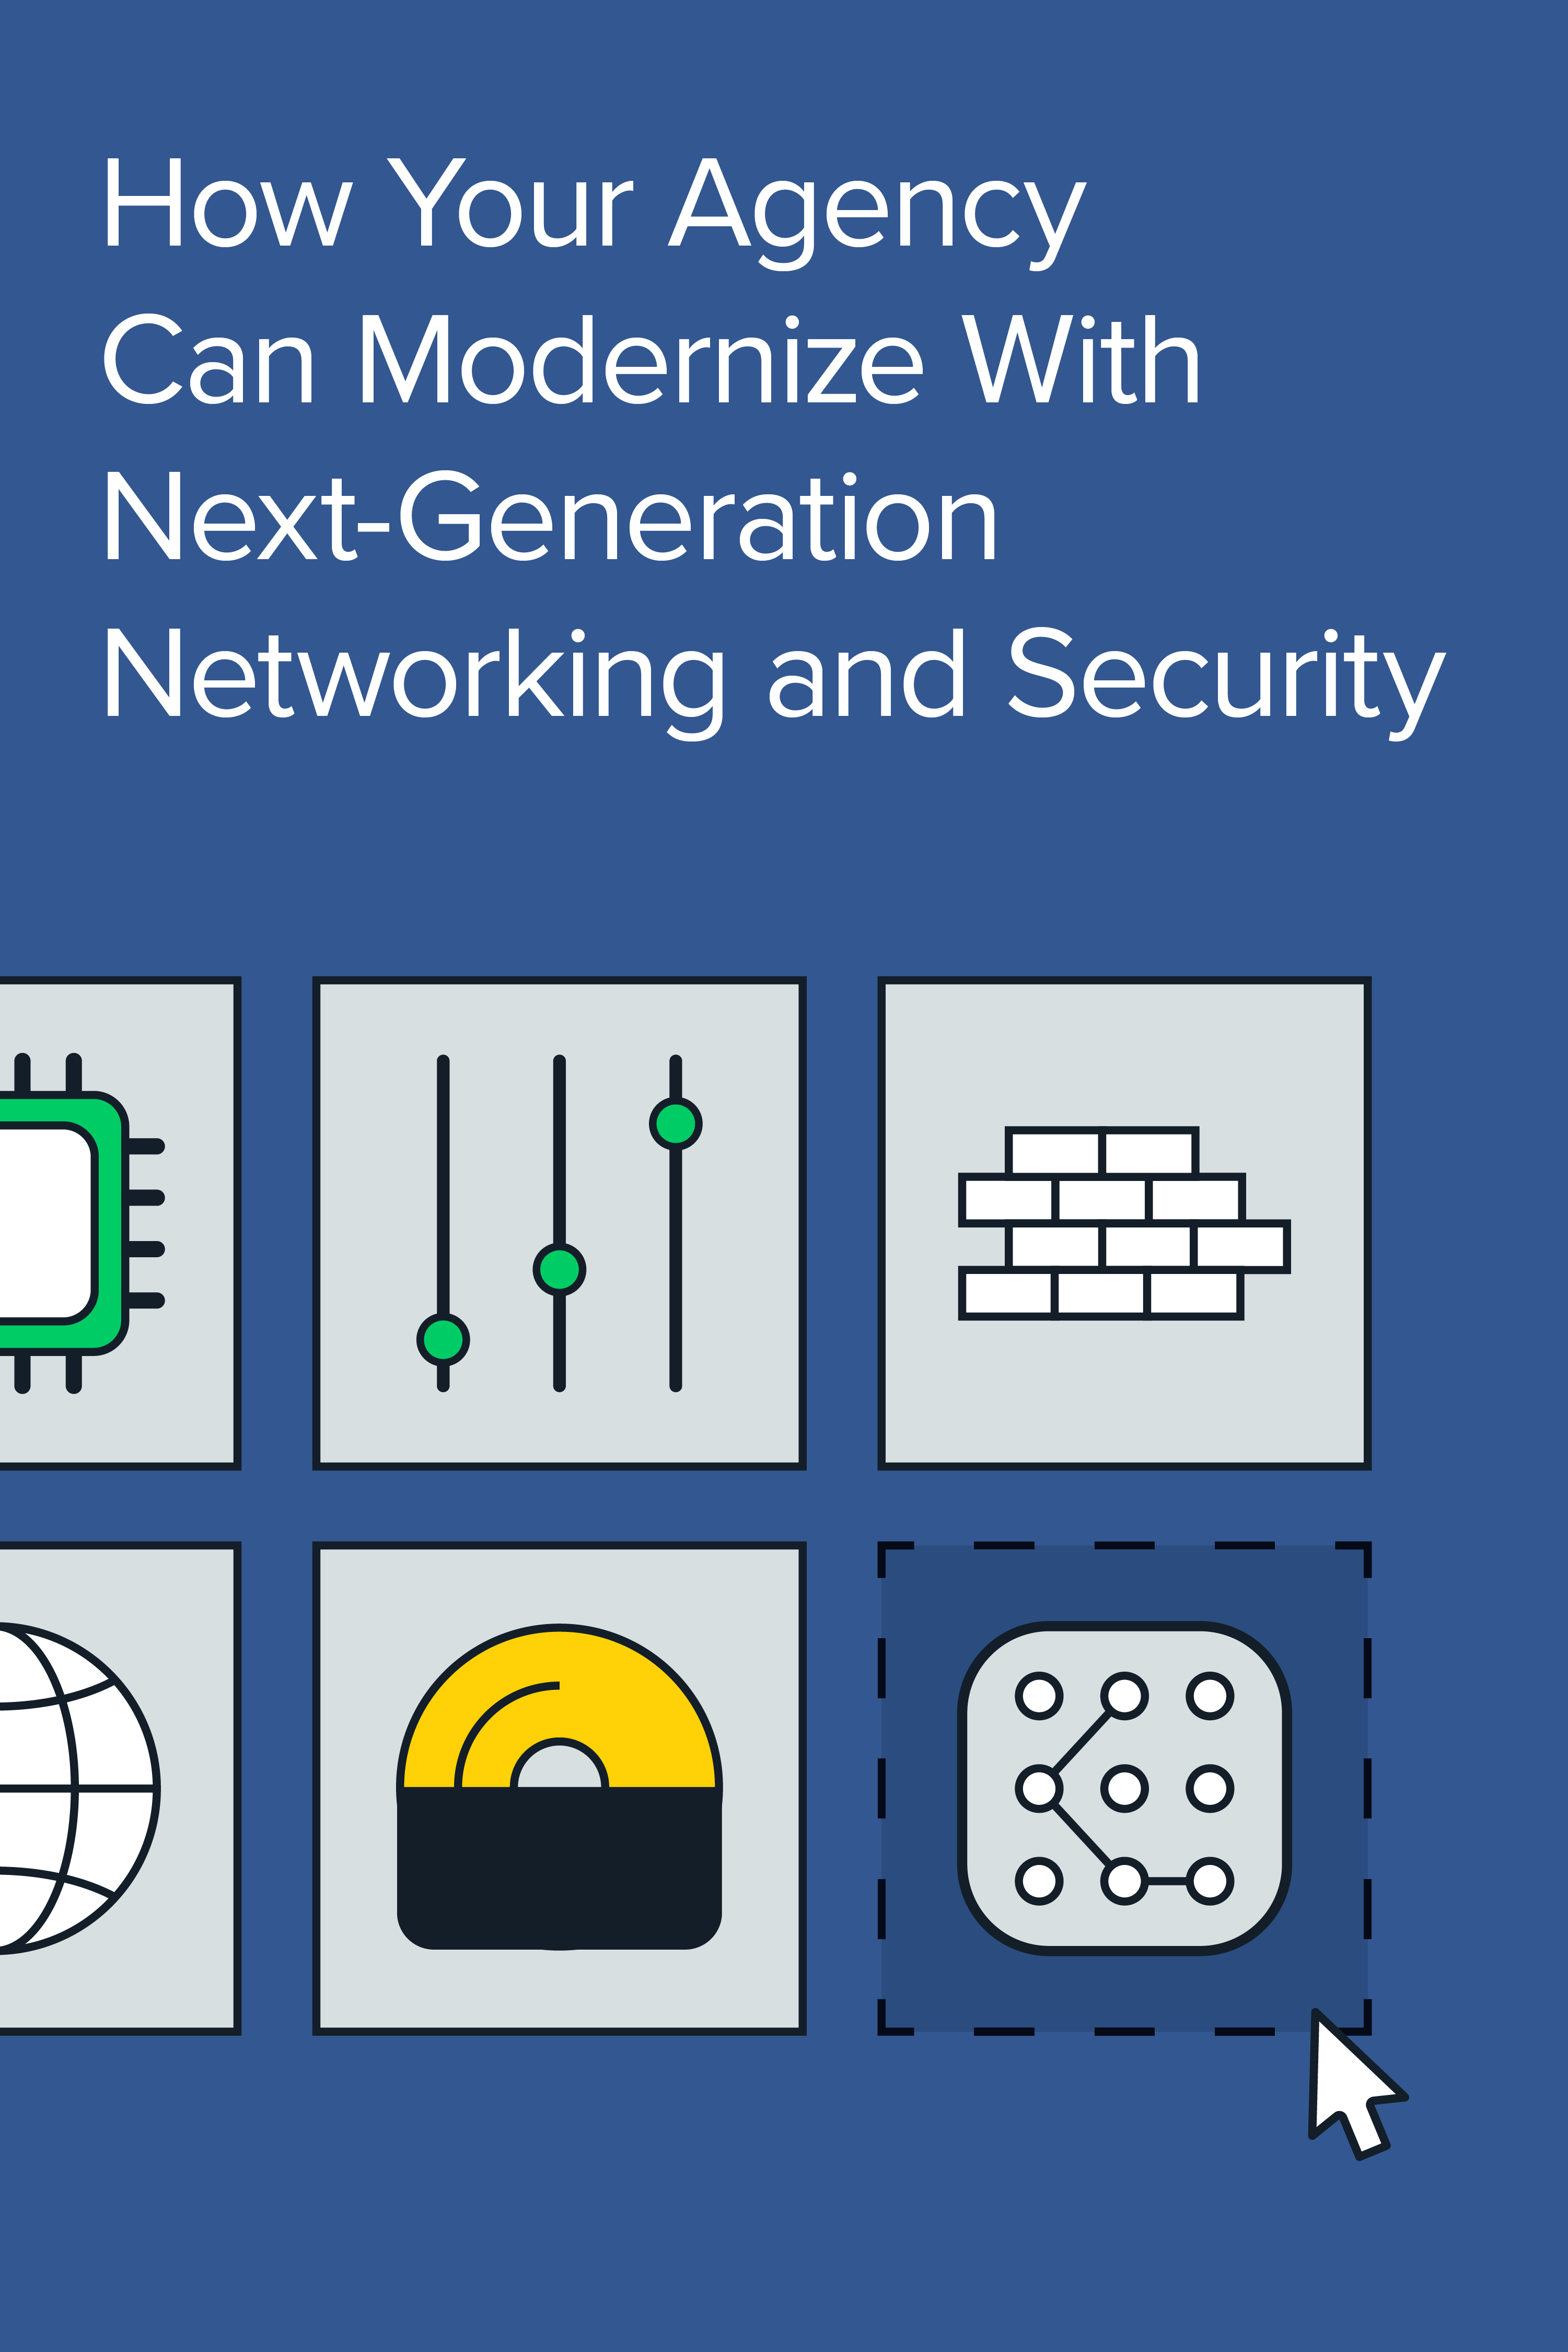 How Your Agency Can Modernize with NextGeneration